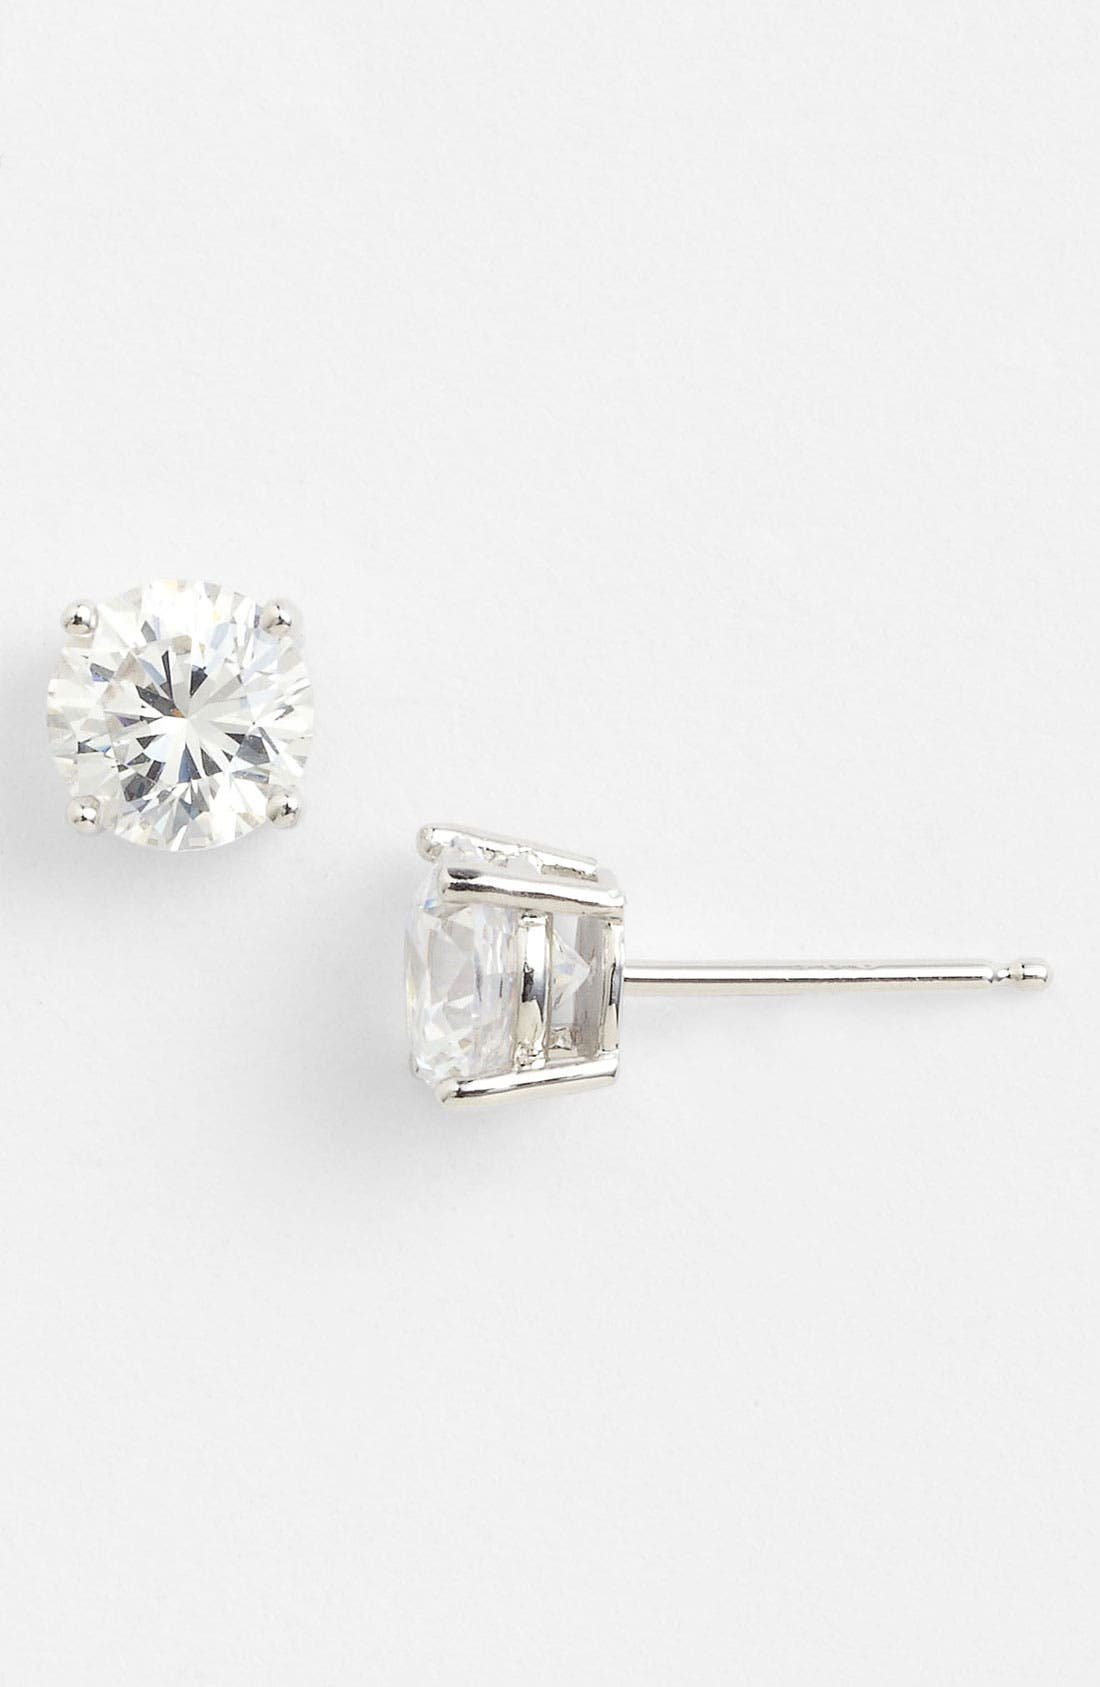 Main Image - Nordstrom Round 2ct Cubic Zirconia Earrings (Special Purchase)